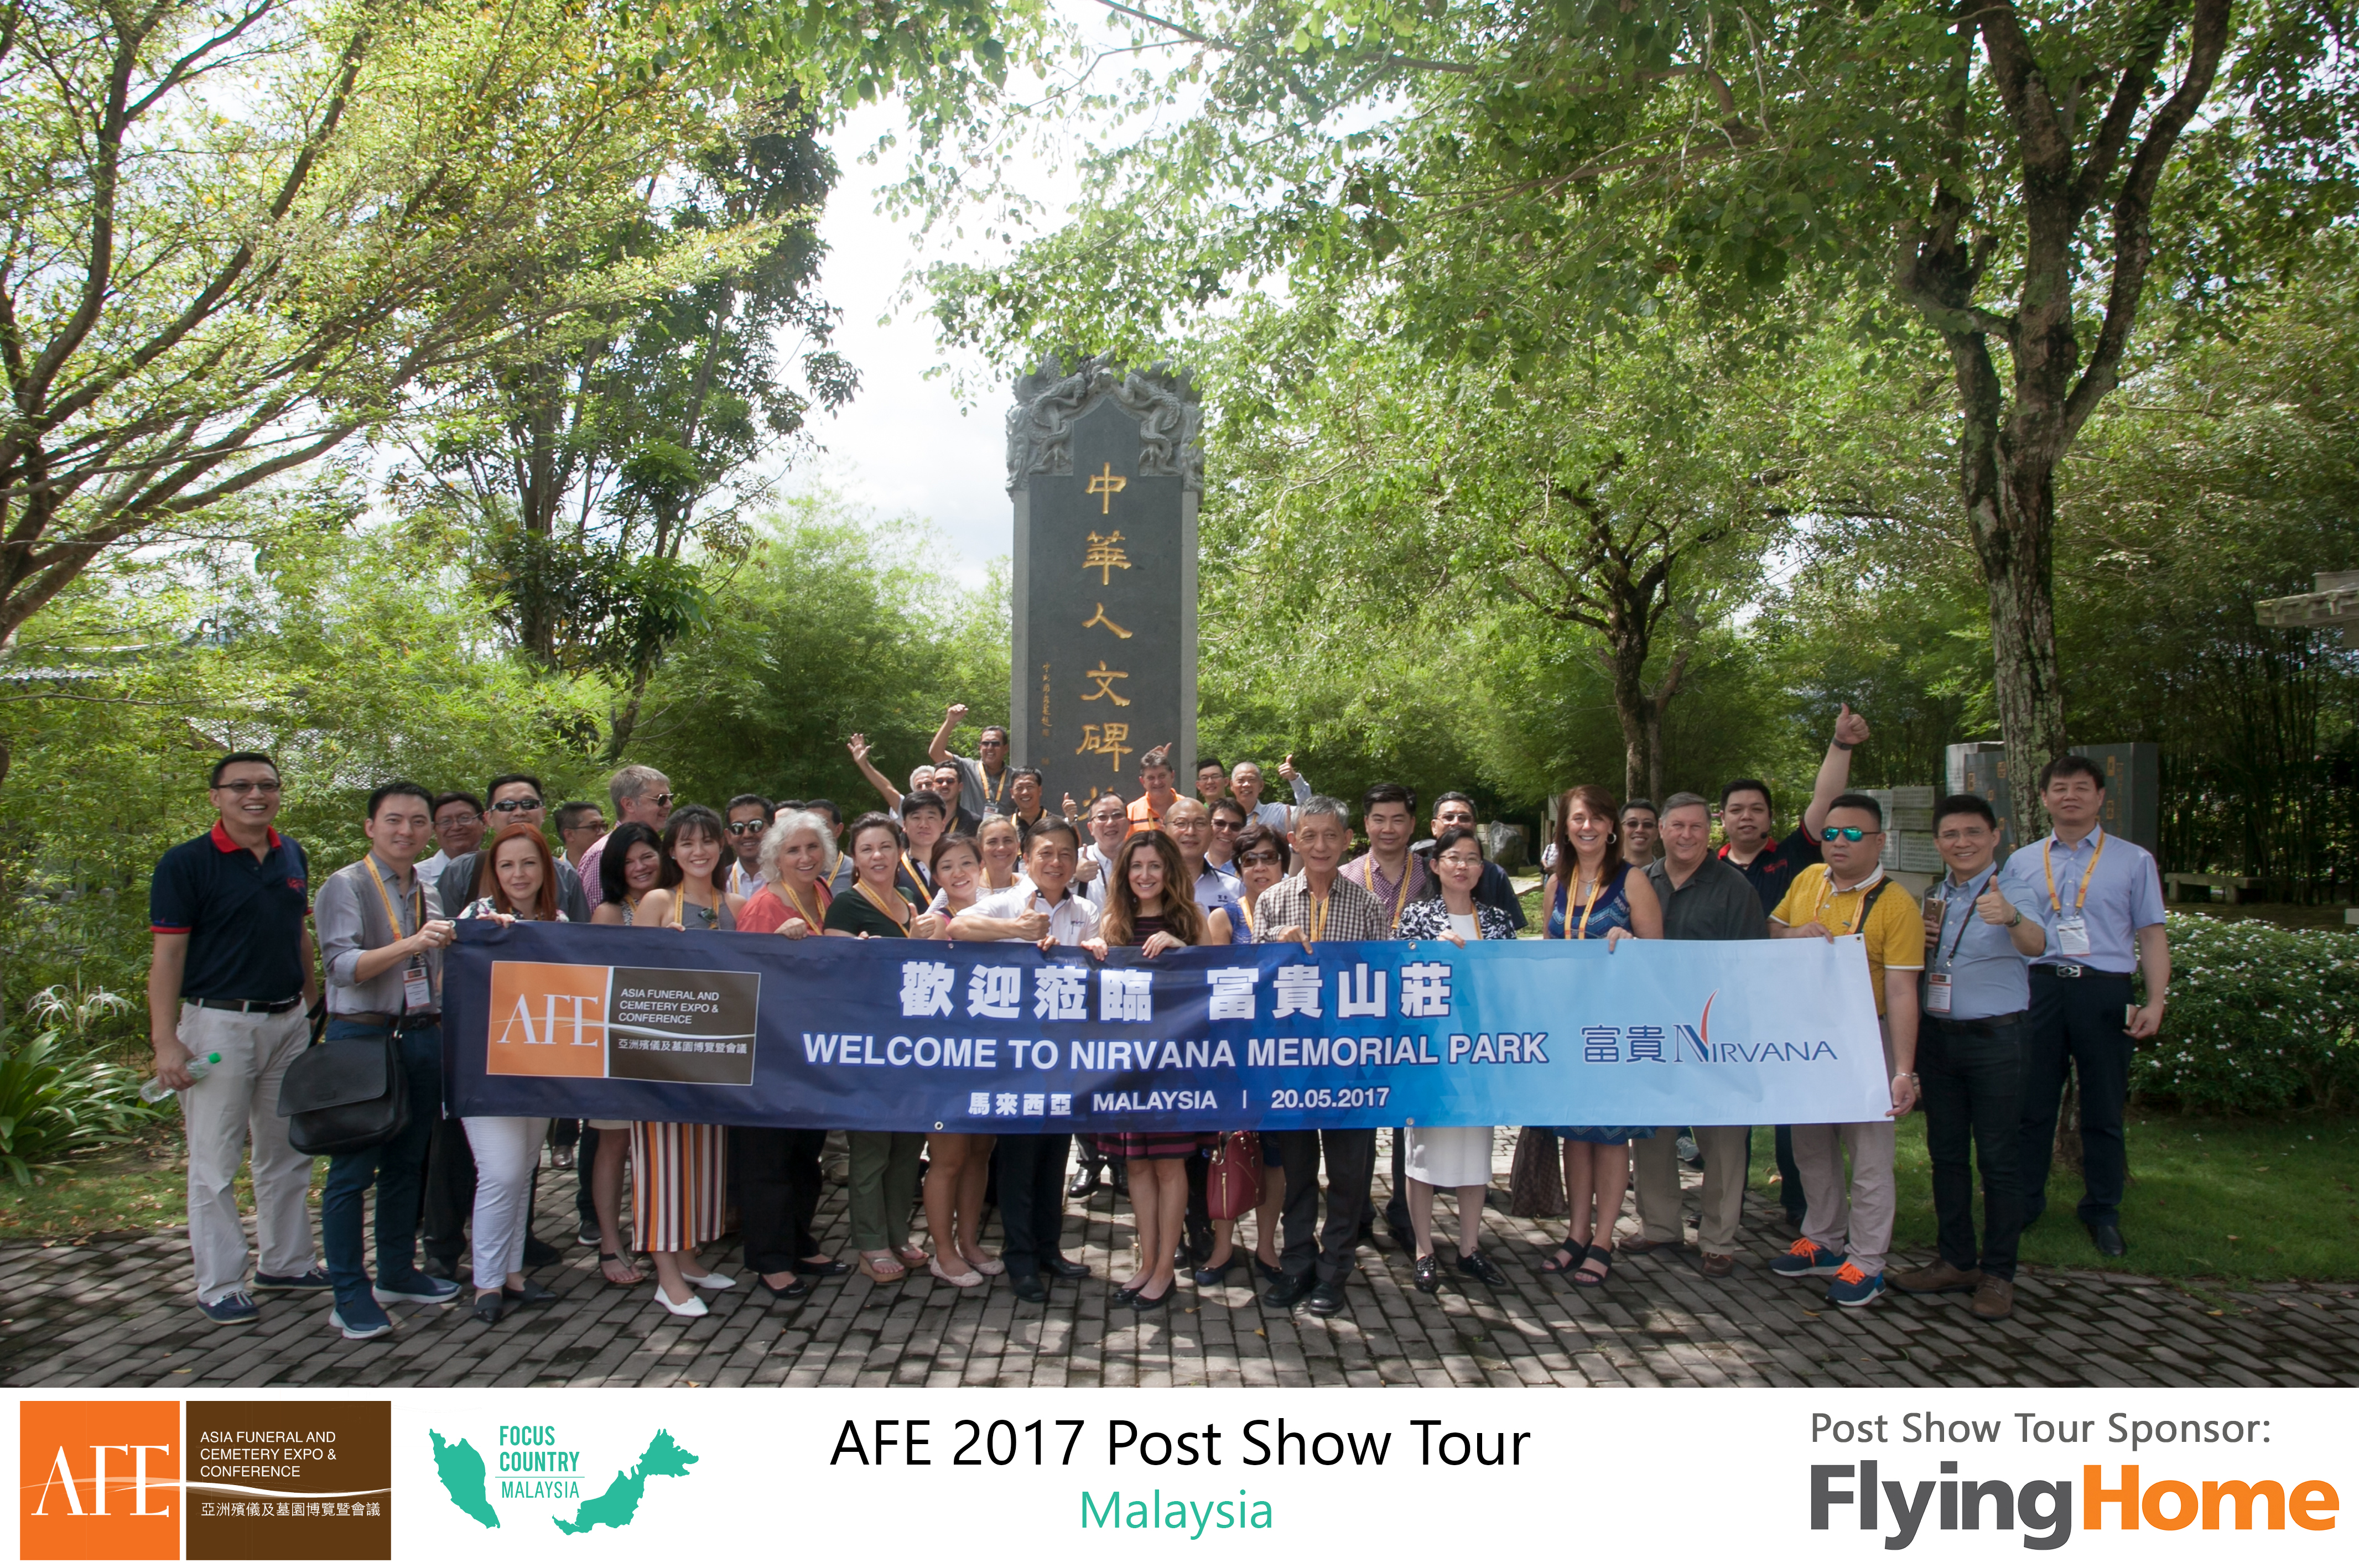 AFE Post Show Tour 2017 Day 2 - 09